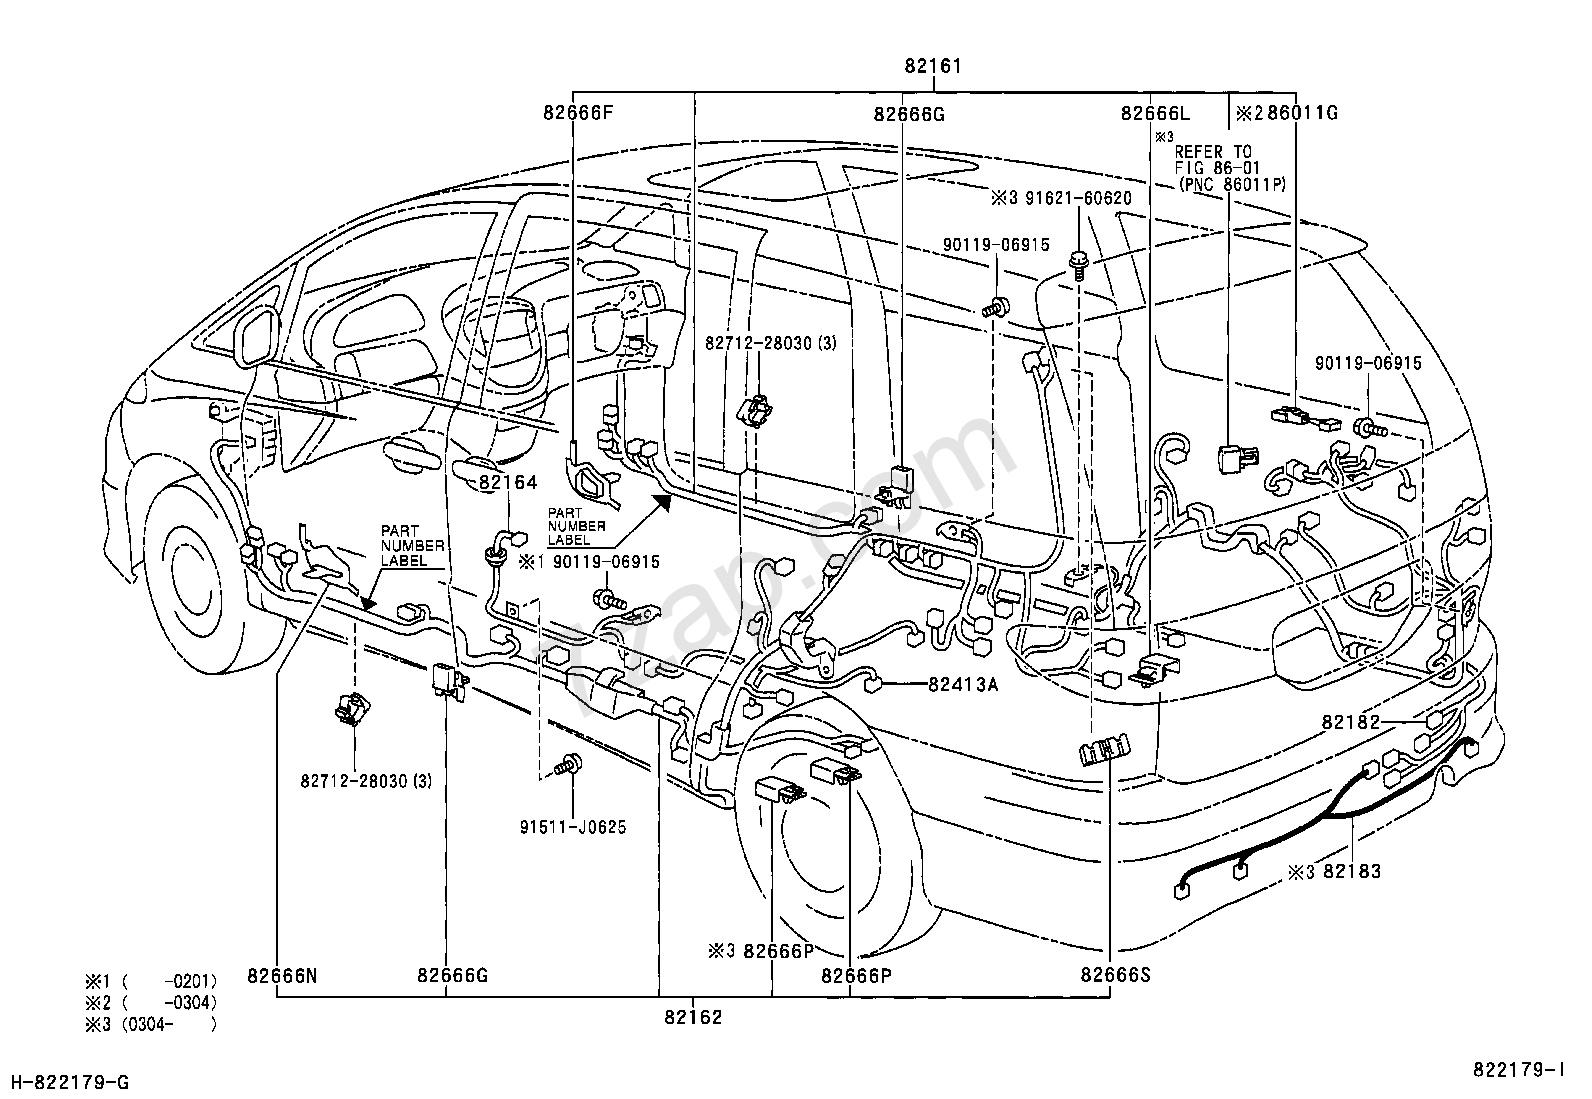 toyota sienna van fuse box location  toyota  auto wiring diagram